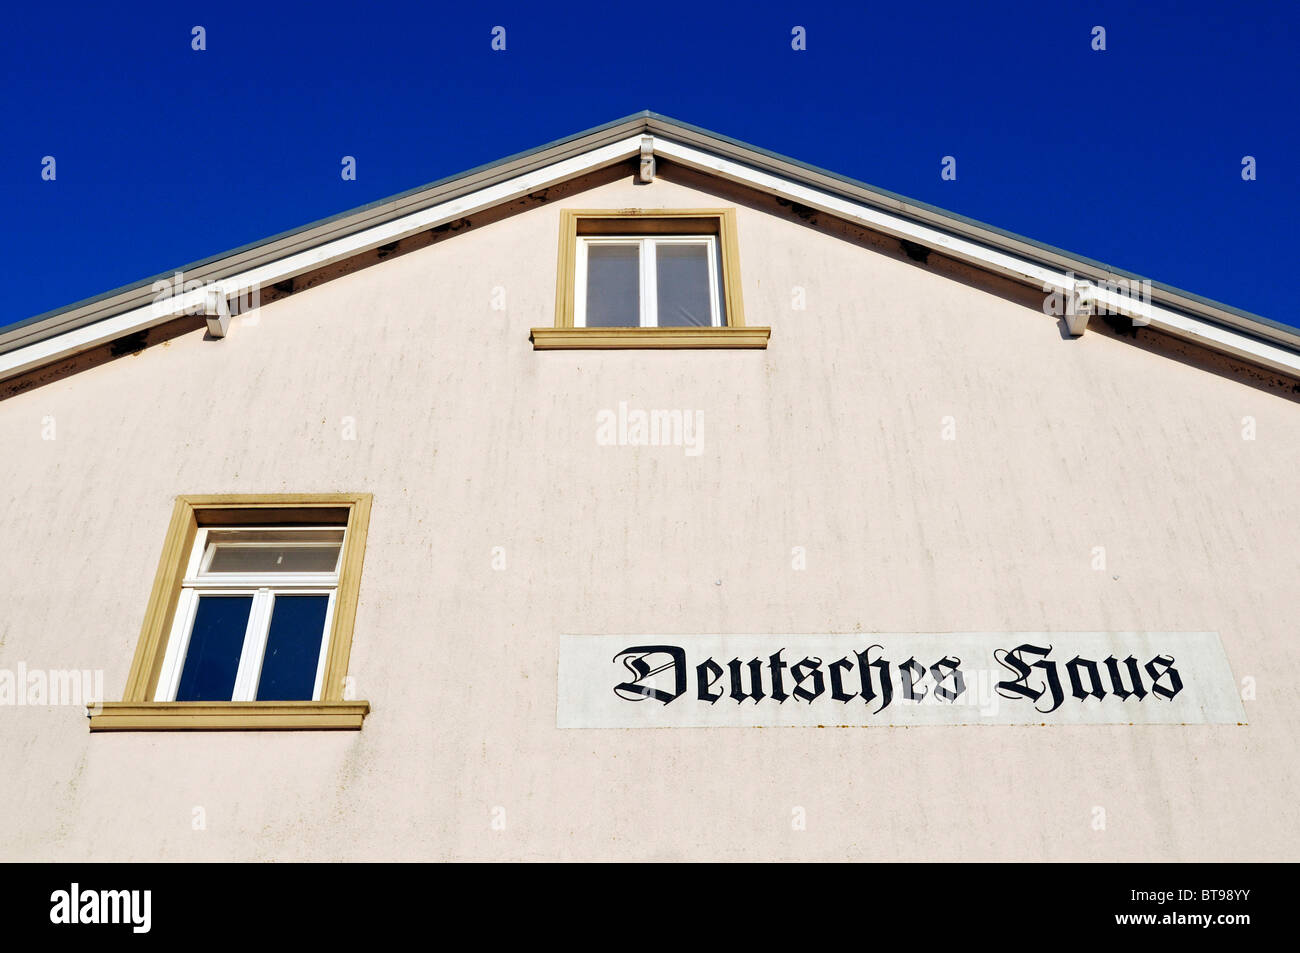 Pension with the inscription 'Deutsches Haus', 'German house', Lohme village, Jasmund peninsula, - Stock Image